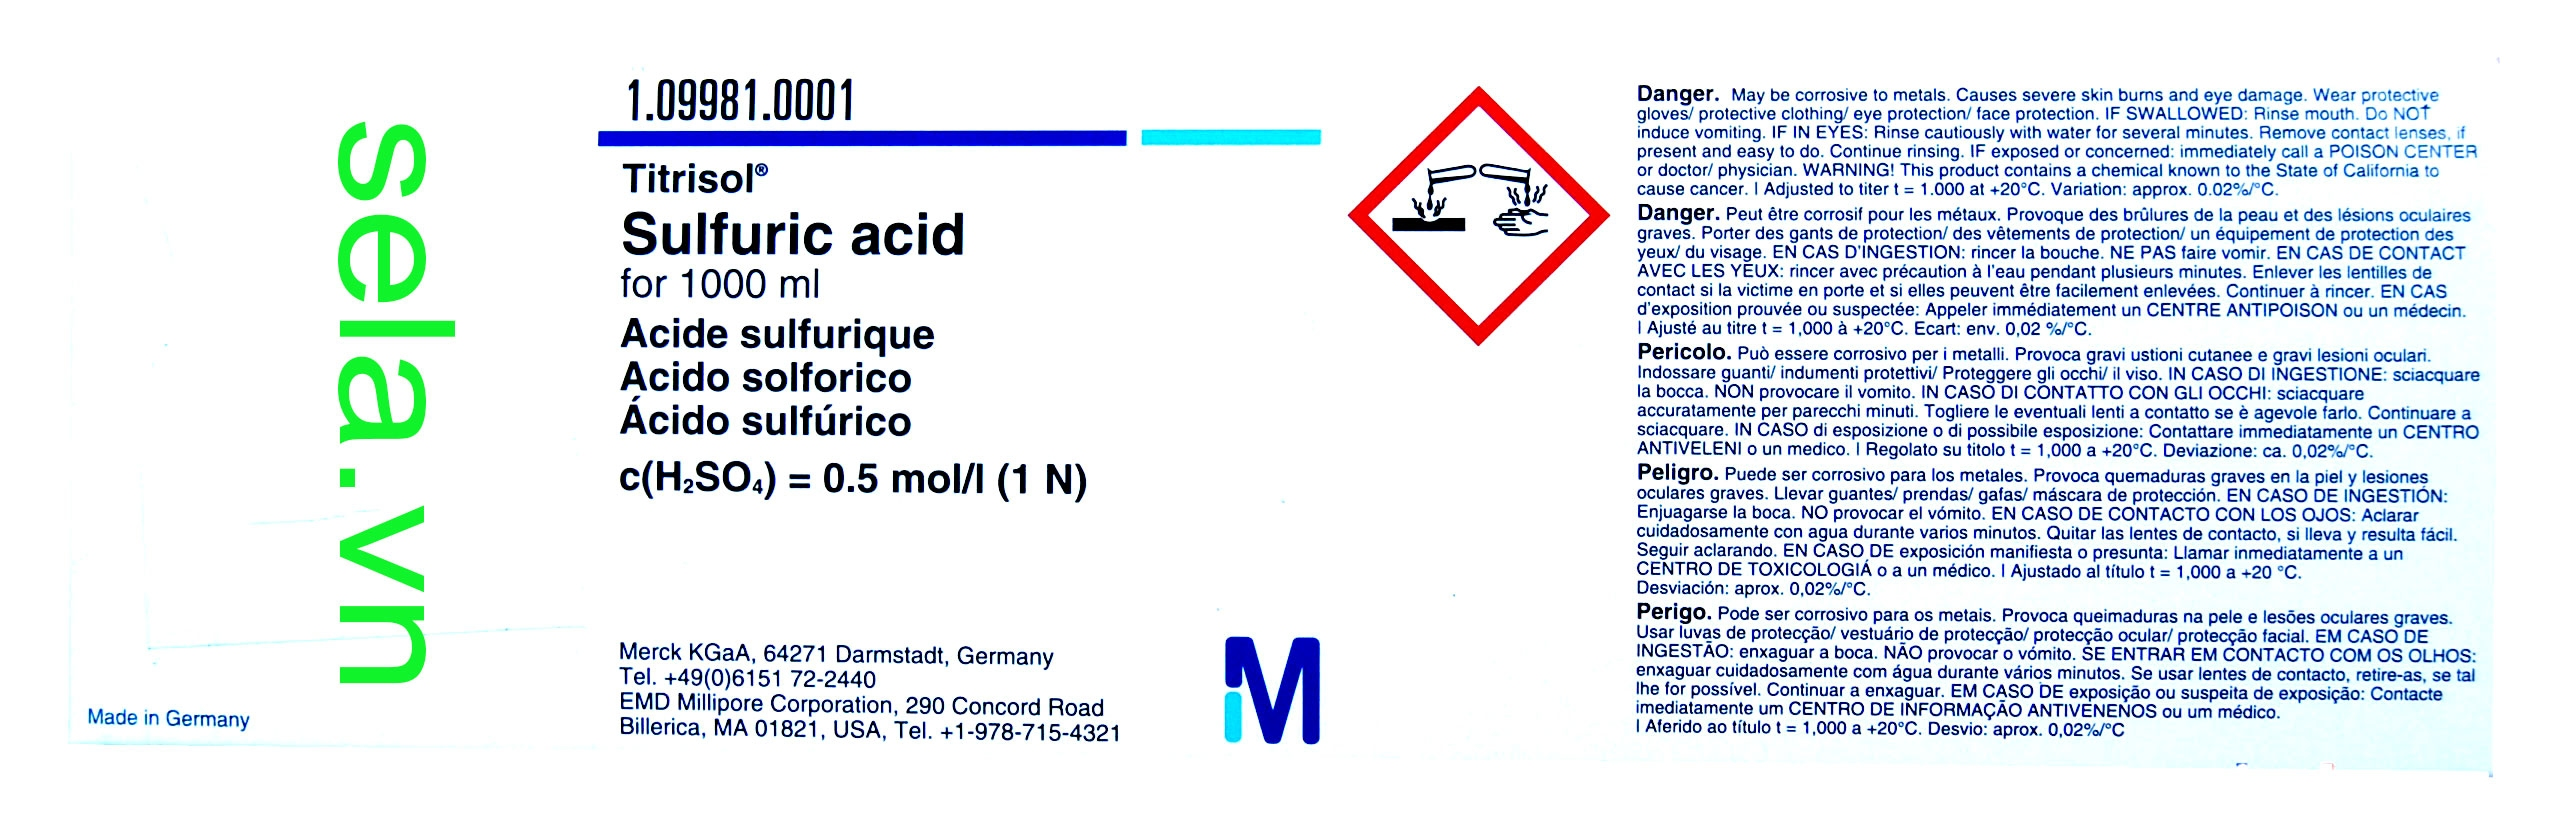 Sulfuric acid for 1000 ml, c(H₂SO₄) = 0.5 mol/l (1 N) Titrisol®